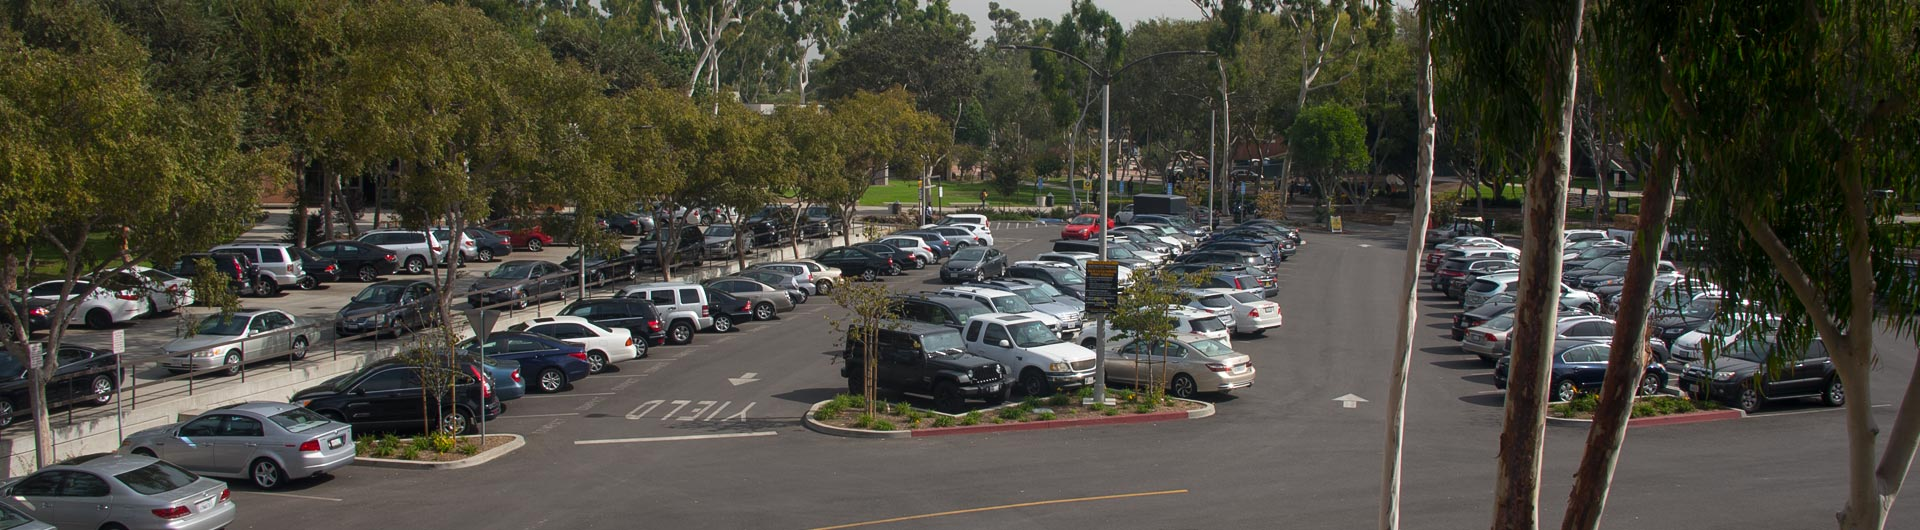 Campus Parking Lot Full of Cars